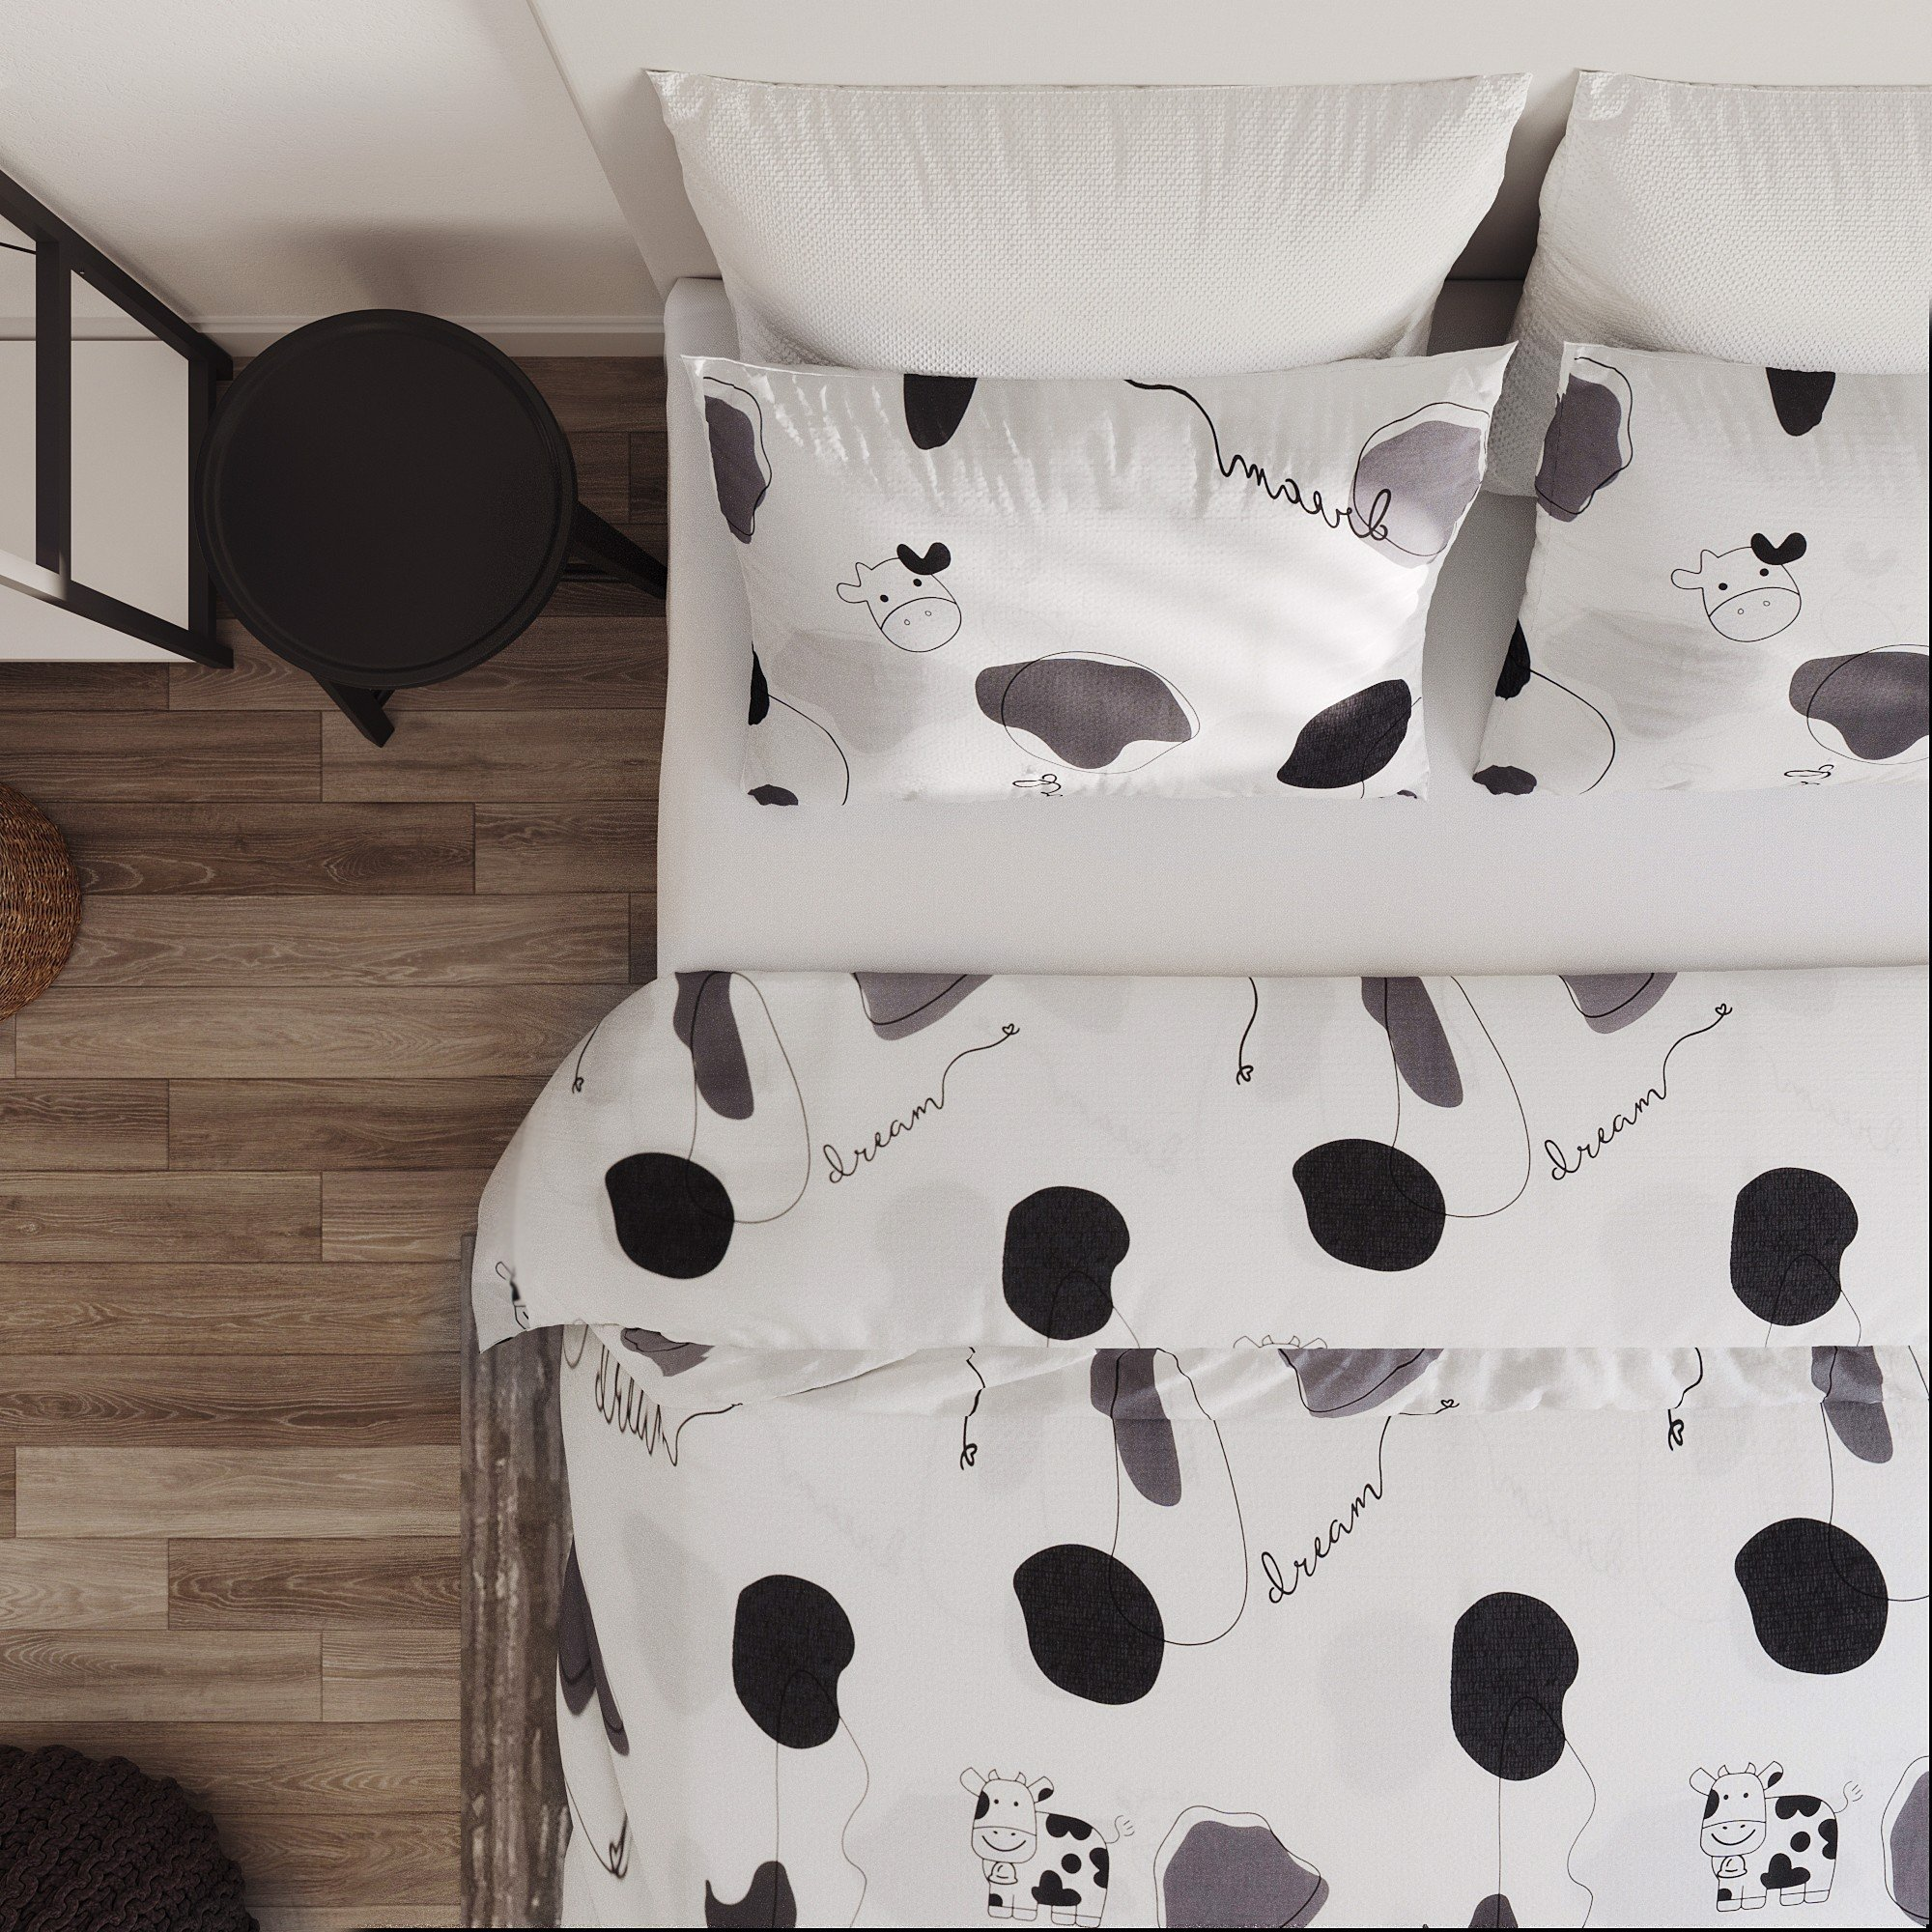 Piollow case 295 Tencel Diary cow